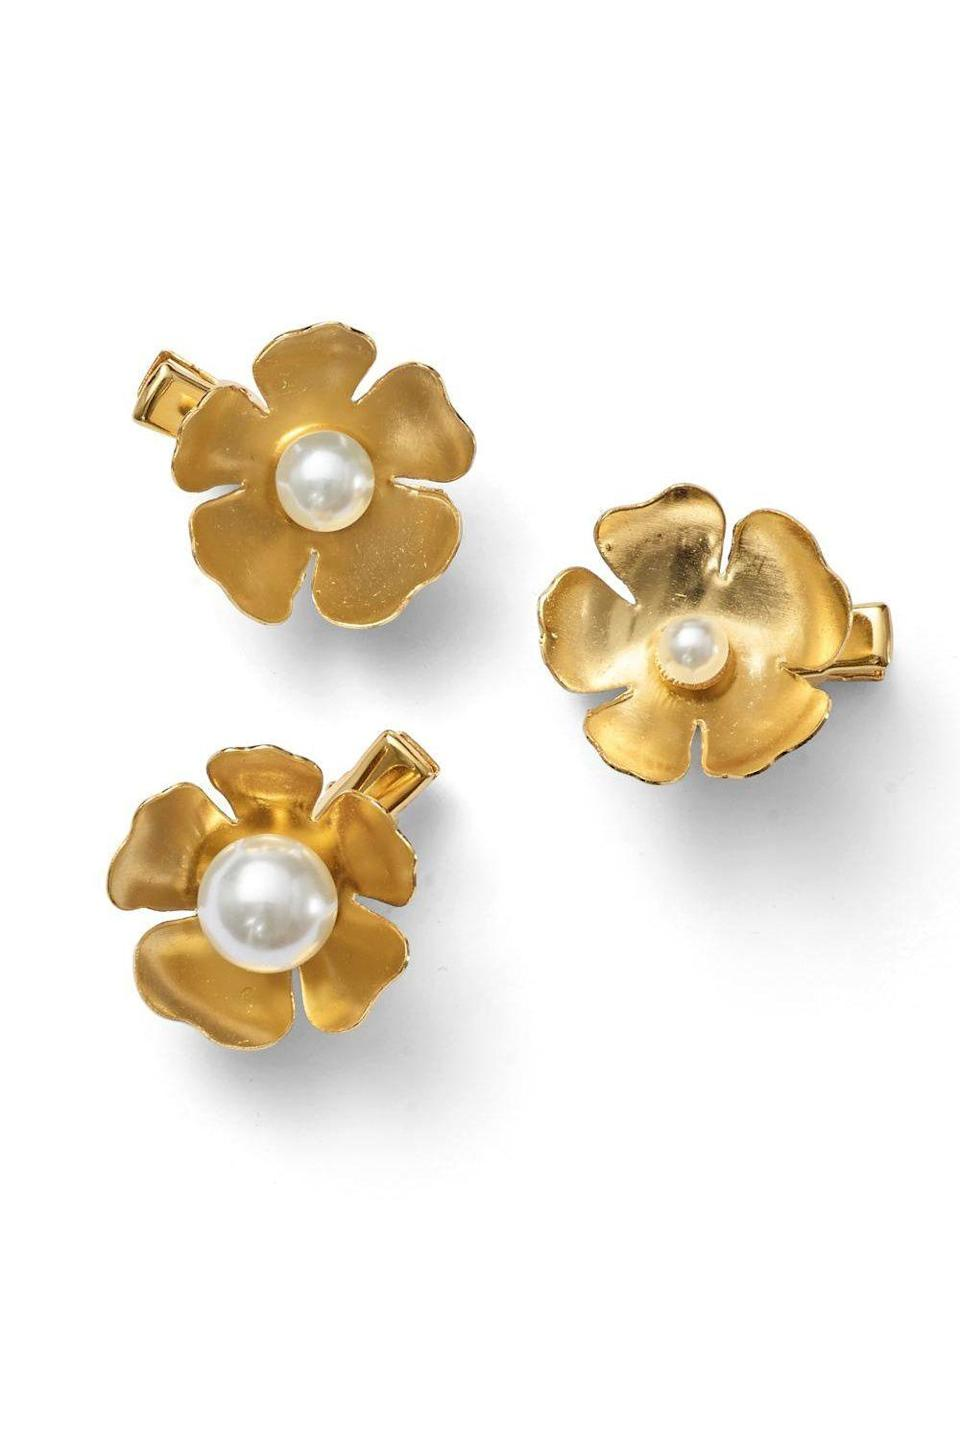 """<p><strong>$168.00</strong></p><p><a href=""""https://leletny.com/collections/clips/products/philippa-pearl-flower-clip-set-of-3"""" rel=""""nofollow noopener"""" target=""""_blank"""" data-ylk=""""slk:Shop Now"""" class=""""link rapid-noclick-resp"""">Shop Now</a></p><p>With this <strong>set of 14k gold clips</strong>, you truly don't need jewelry to wear with it. And thanks to their flower shape, they're also perfect for spring.</p>"""